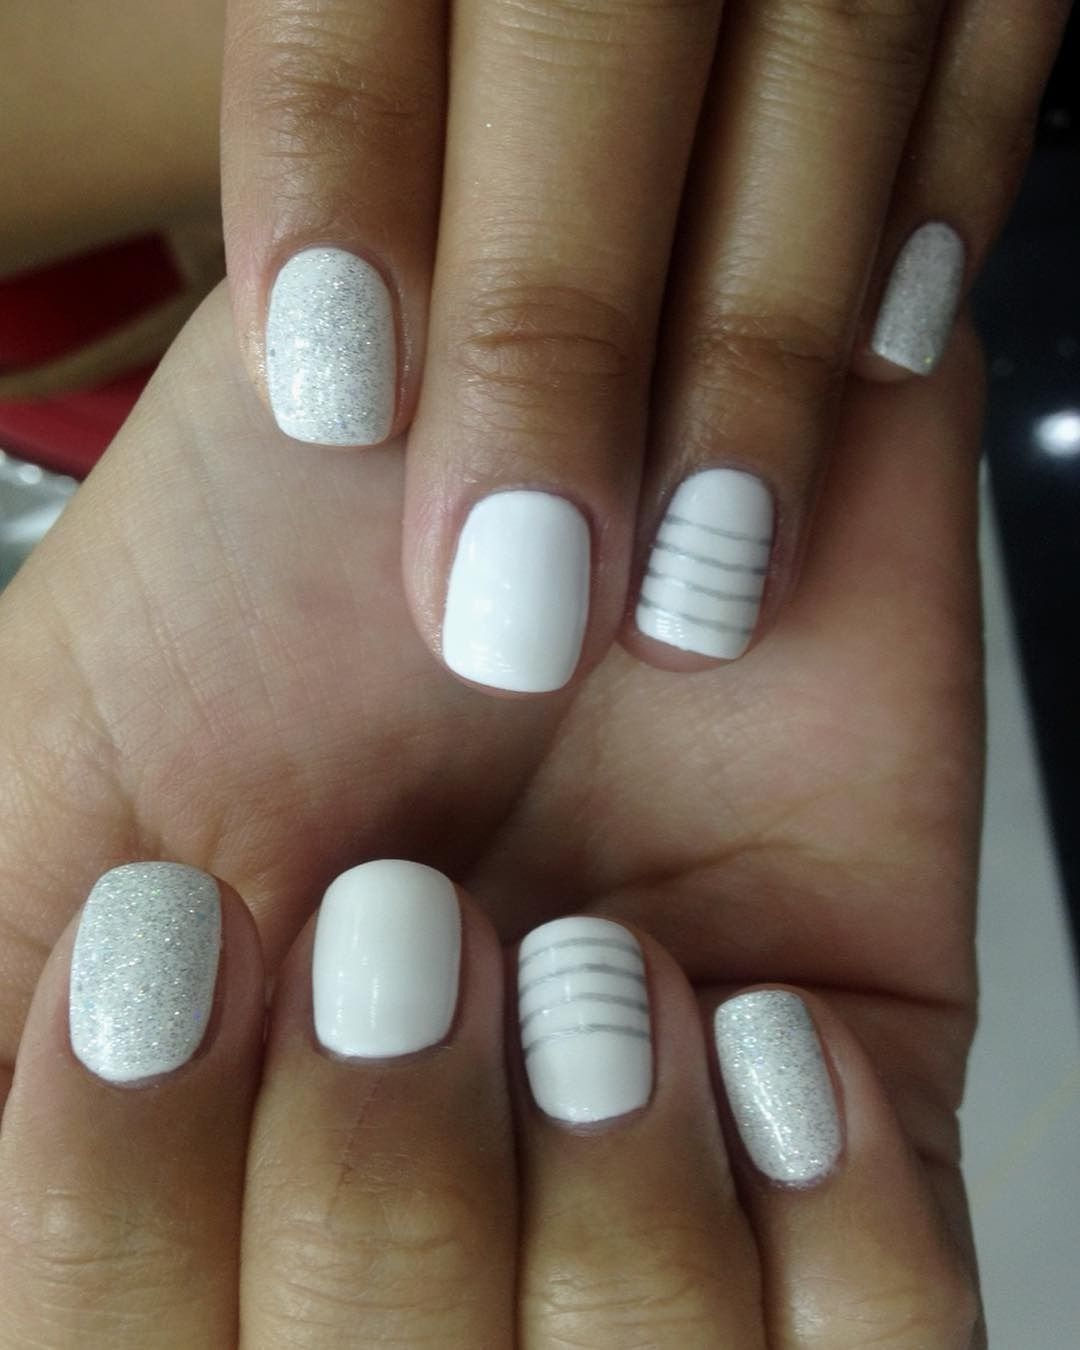 9 White-on-White Nail Designs To Keep Your Mani Looking